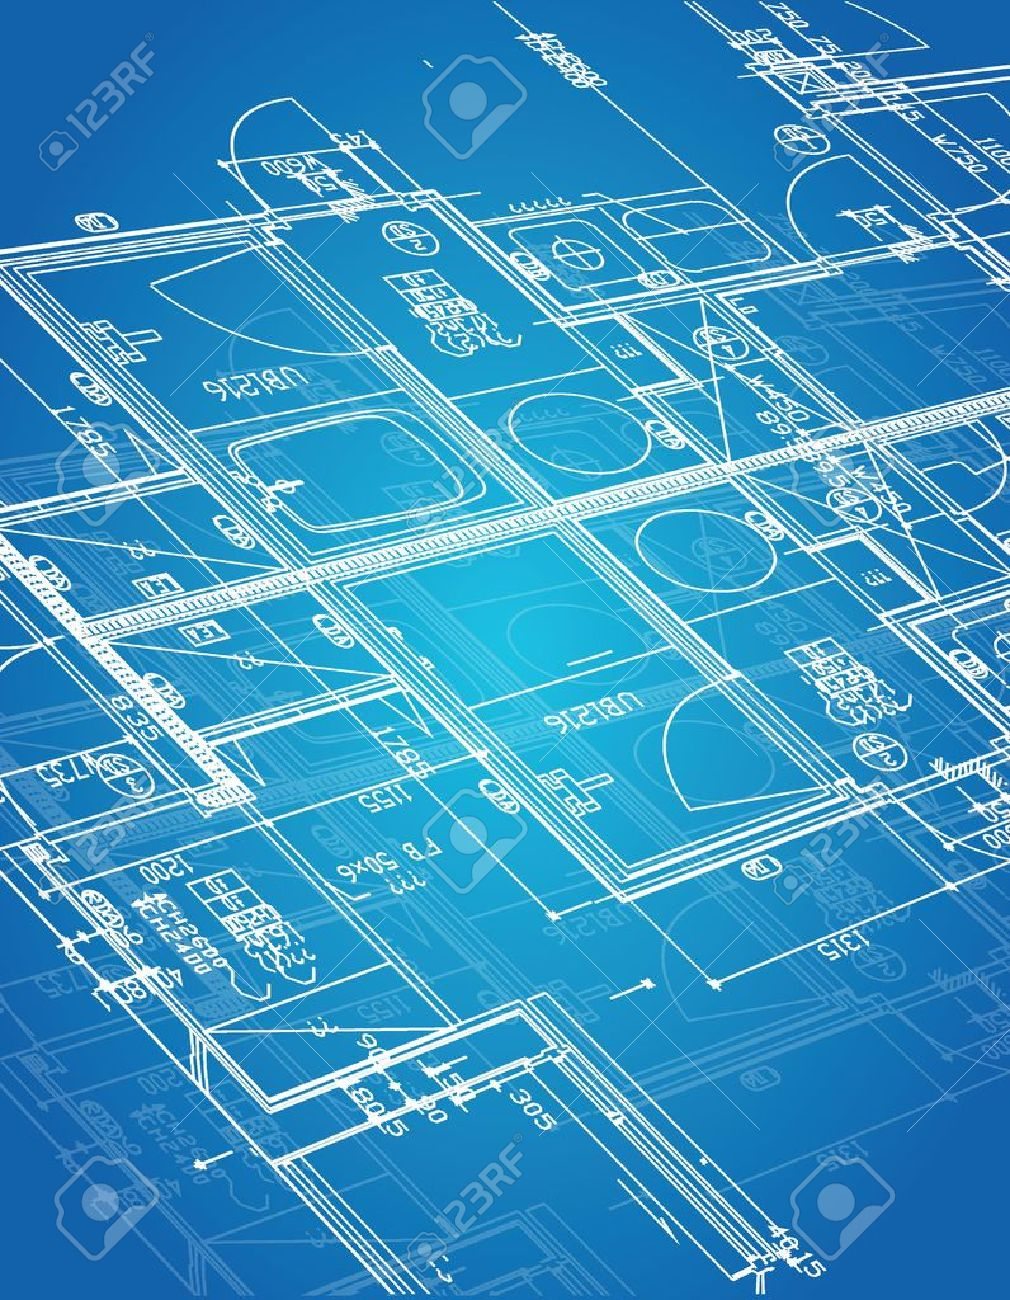 33228980 Blueprint Blueprint Illustration Design Over A